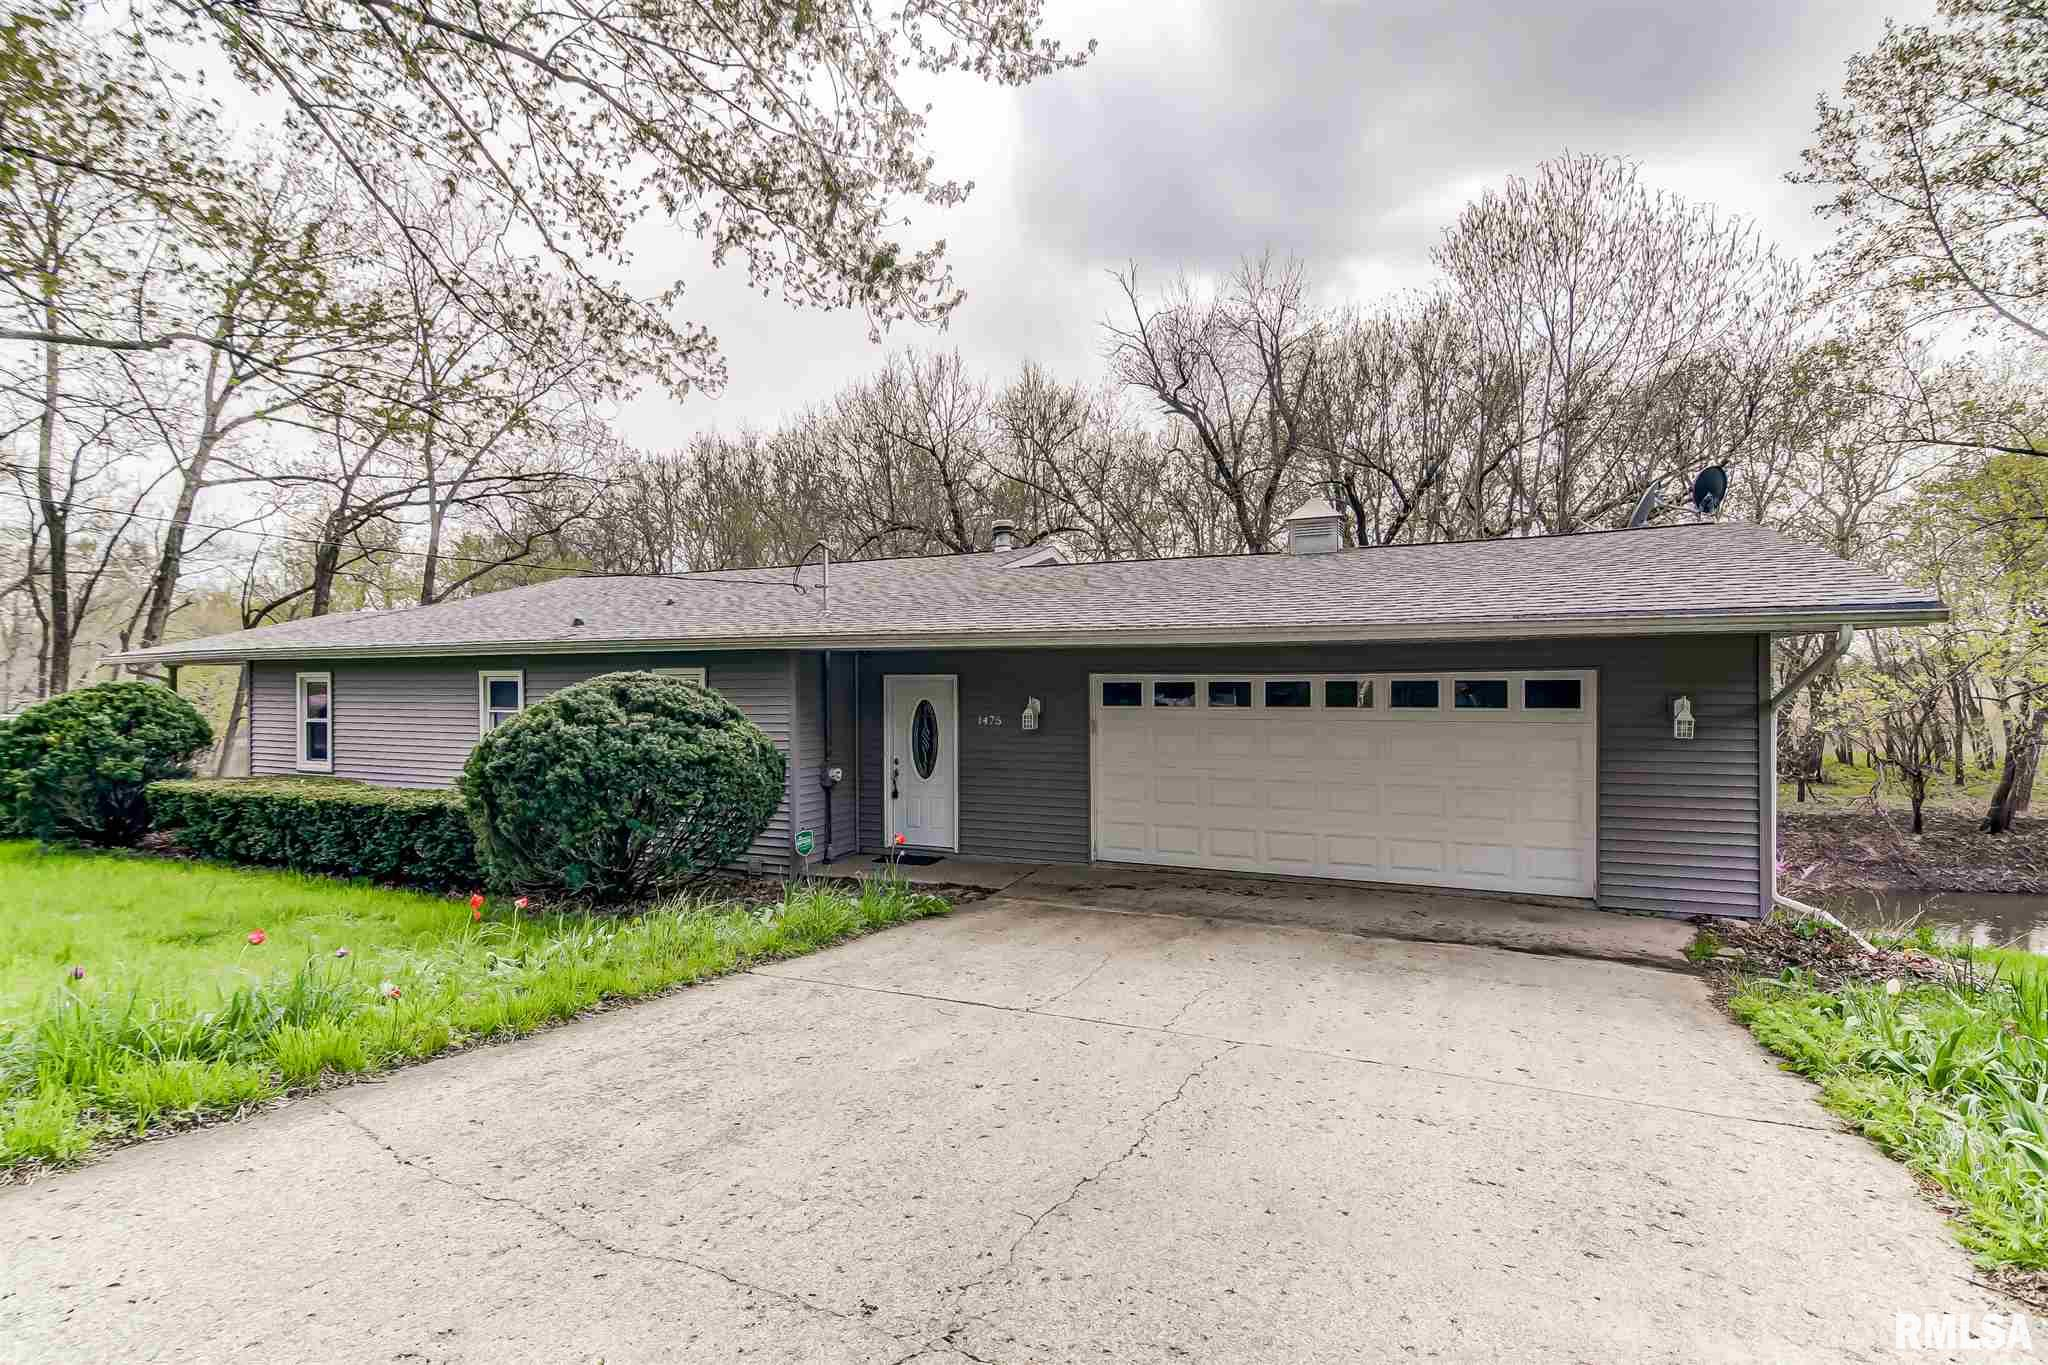 1475 N WALNUT Property Photo - Rochester, IL real estate listing